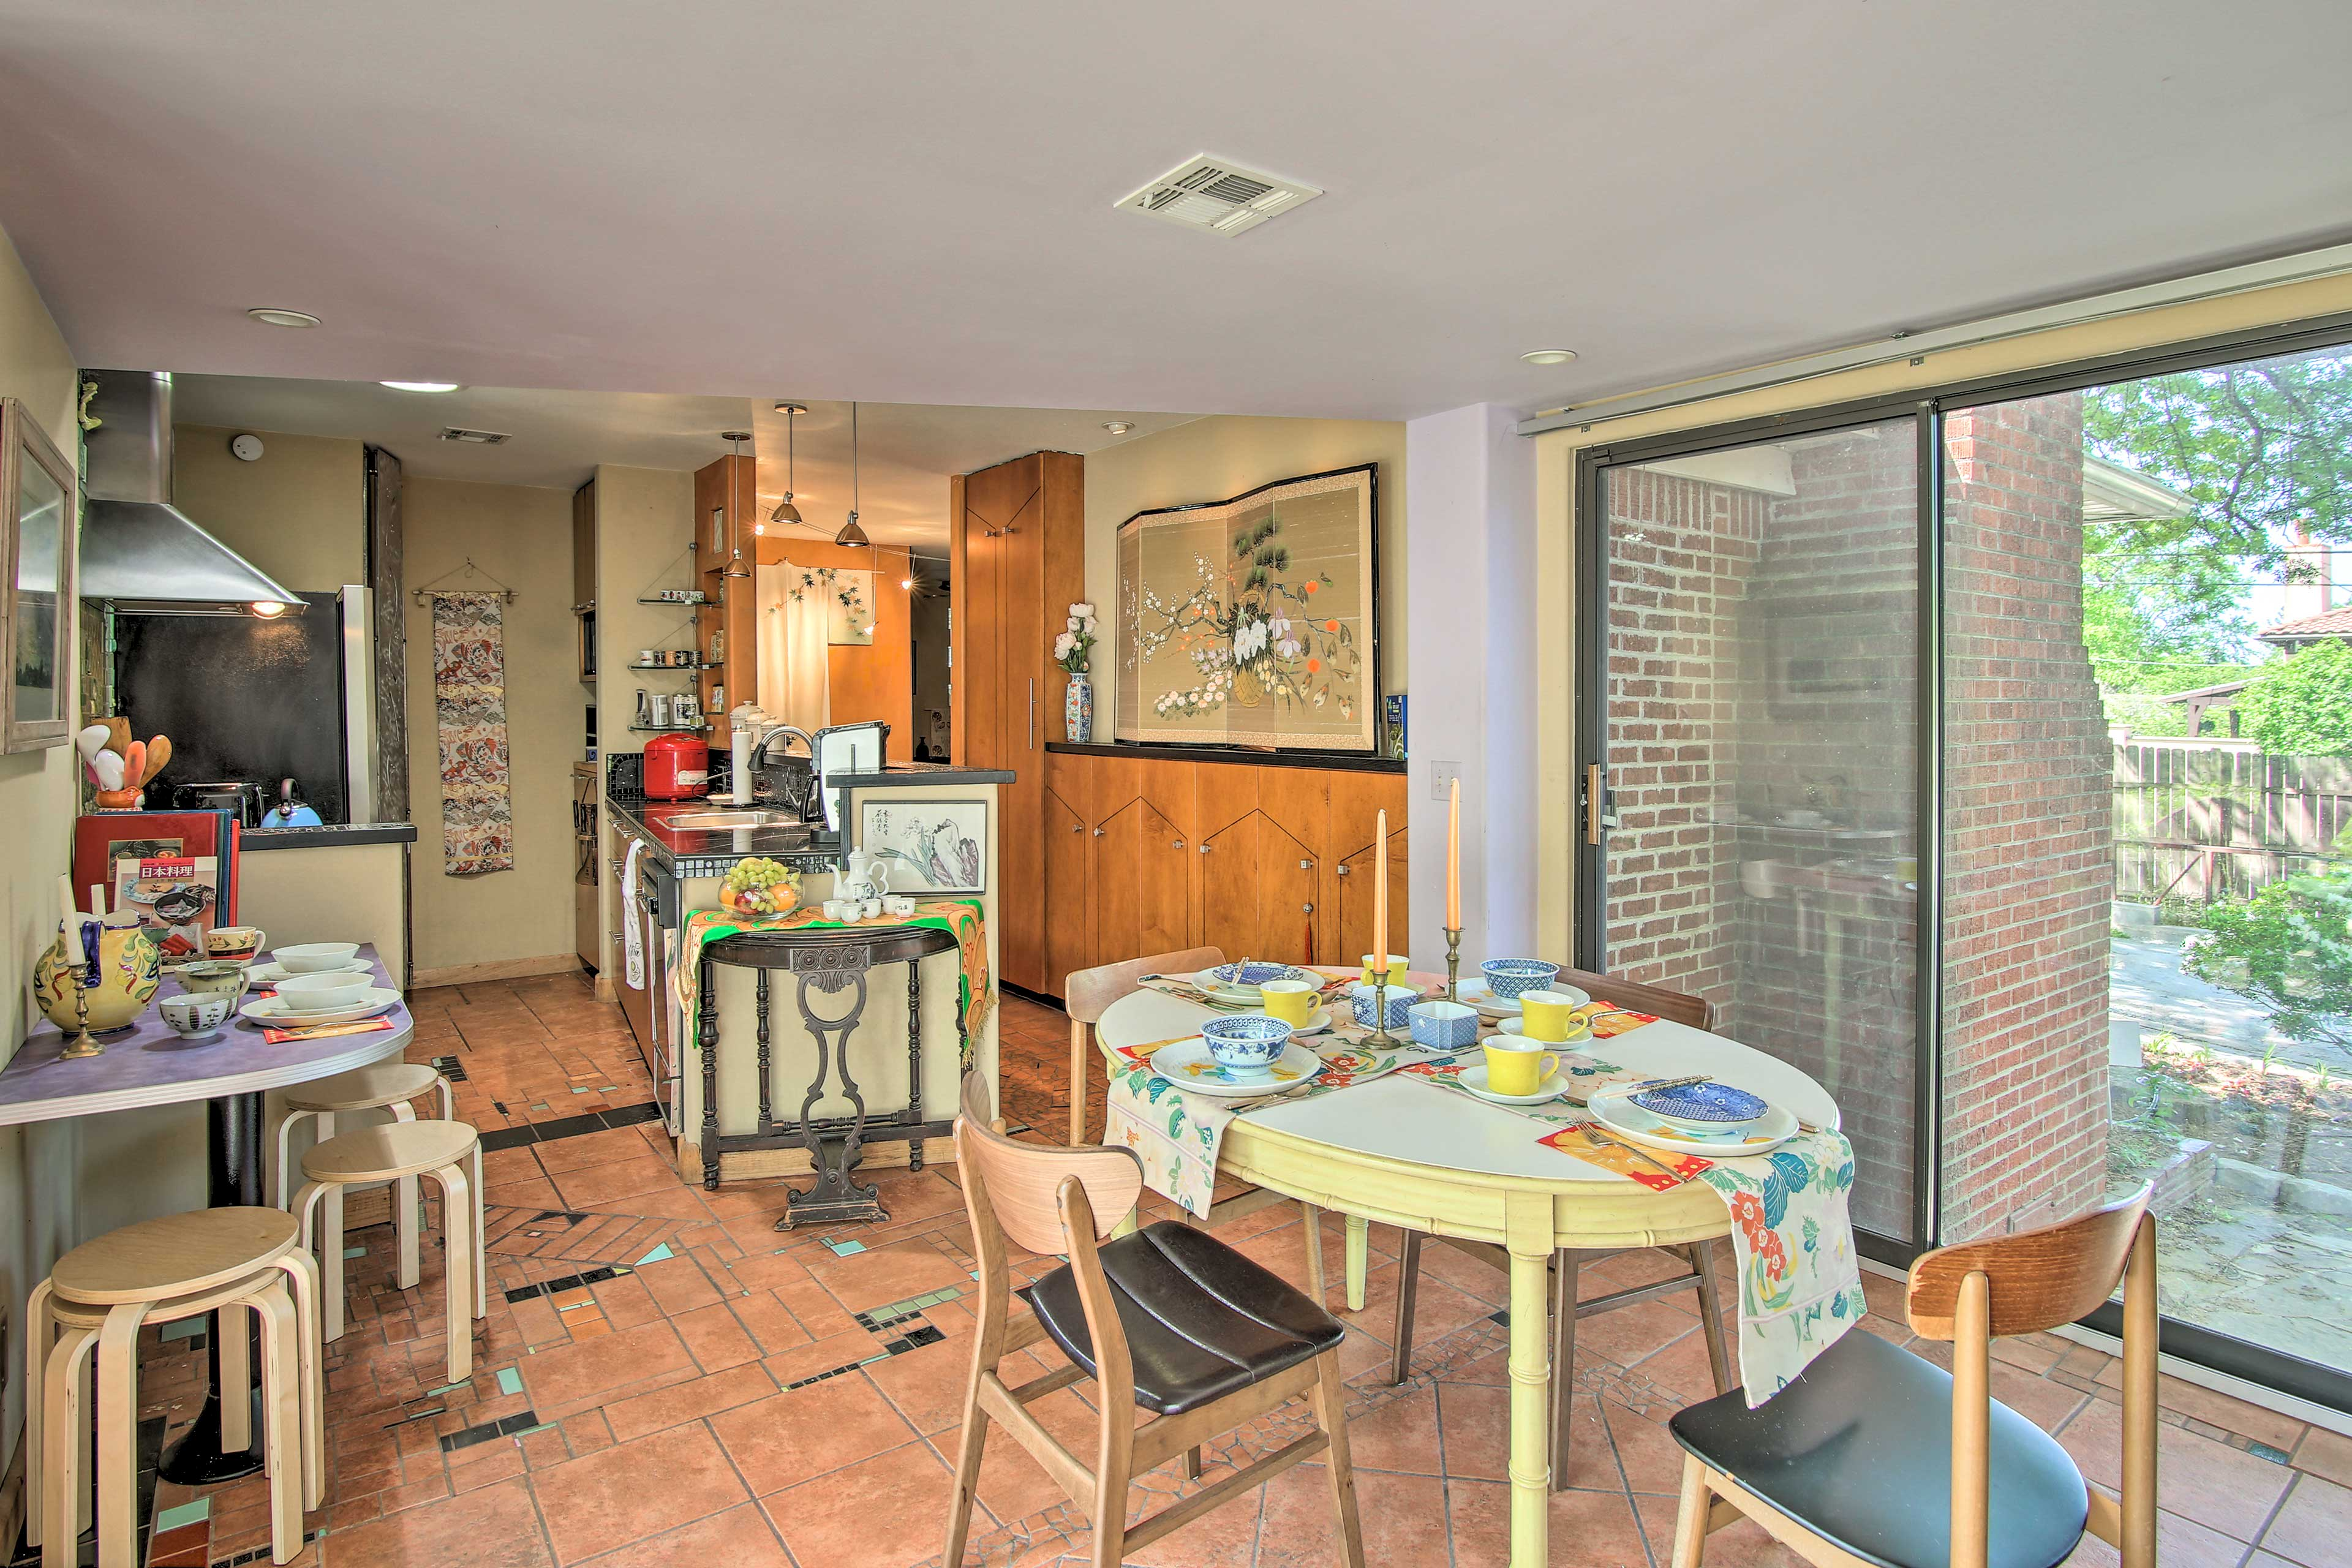 Gather around the main dining space and use the breakfast bar for extra seating.